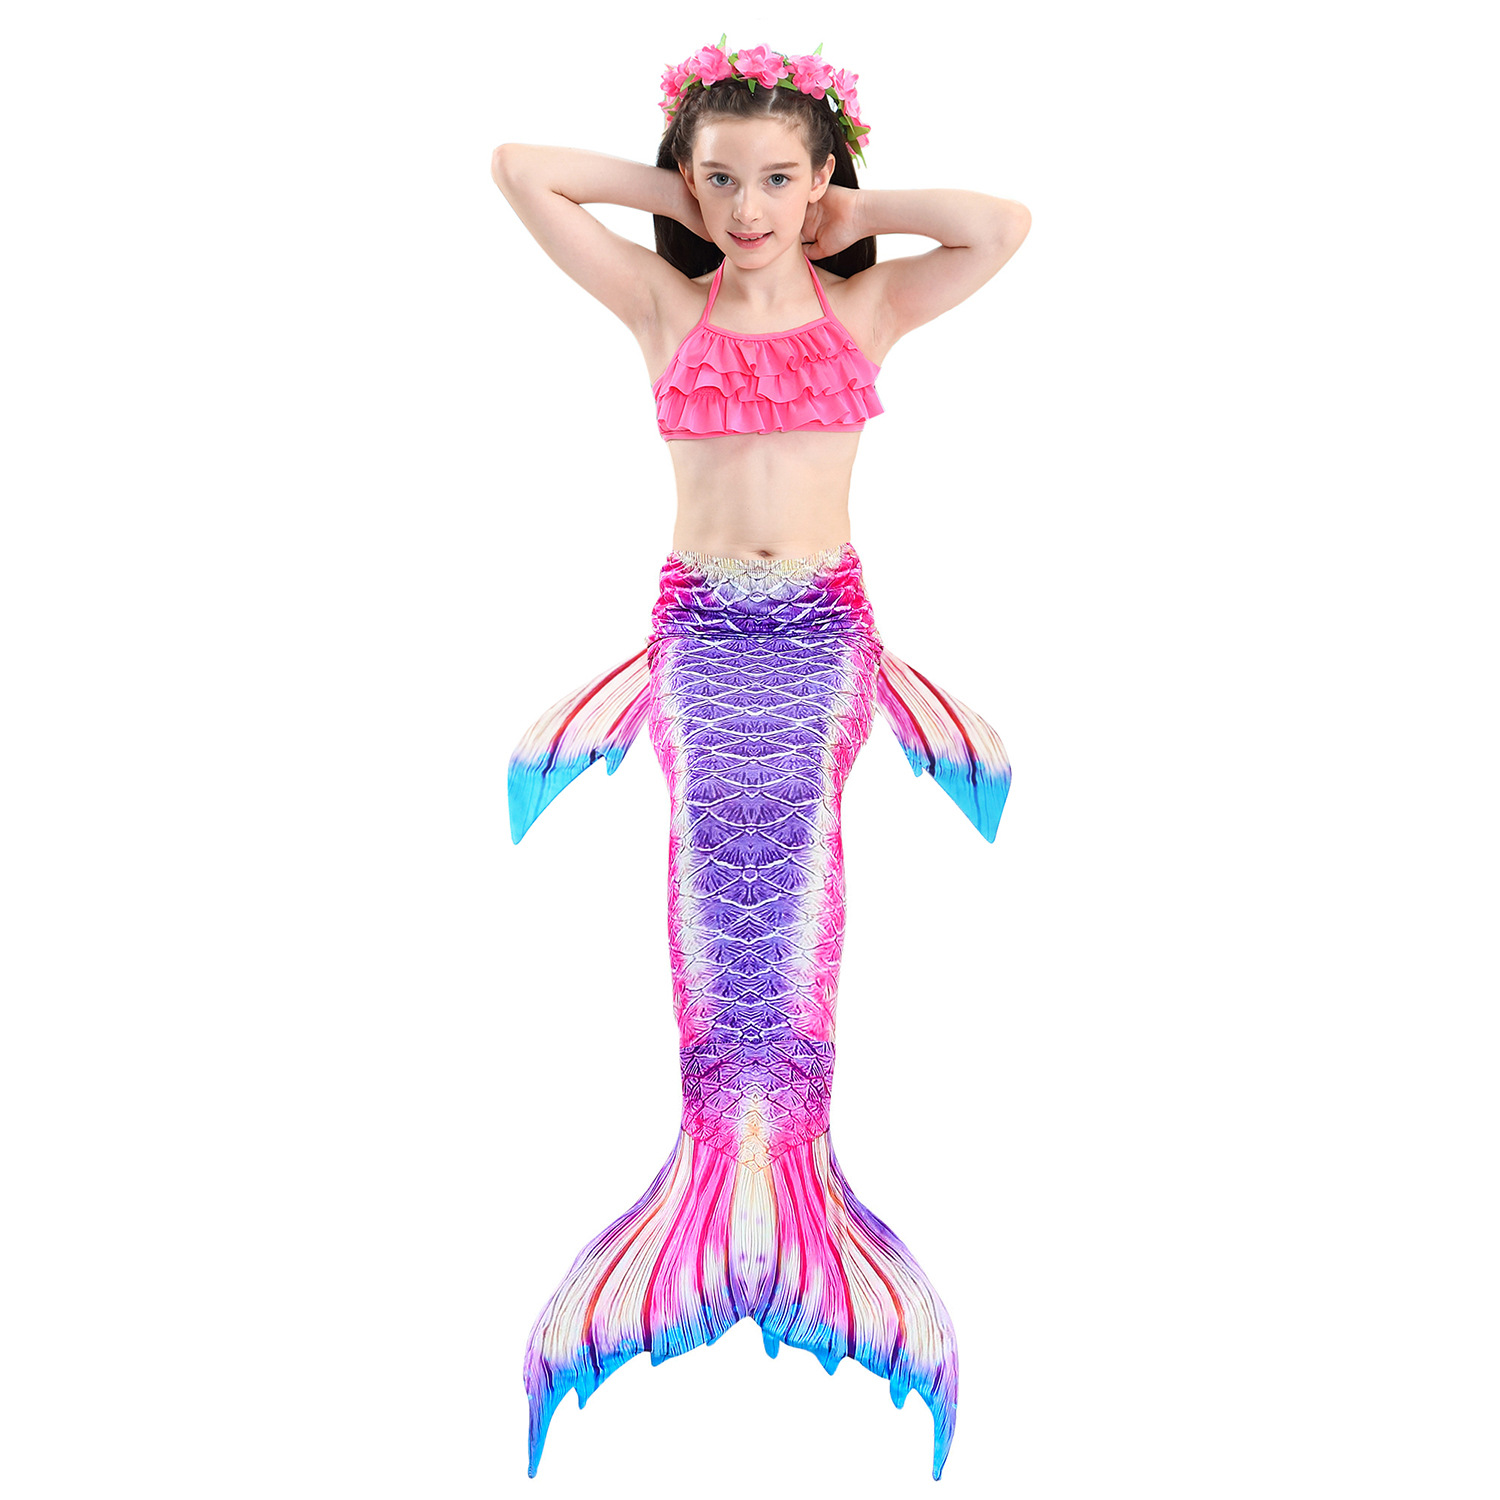 9282493987 898390851 - 4PCS/Set HOT Kids Girls Mermaid Tails with Fin Swimsuit Bikini Bathing Suit Dress for Girls With Flipper Monofin For Swim